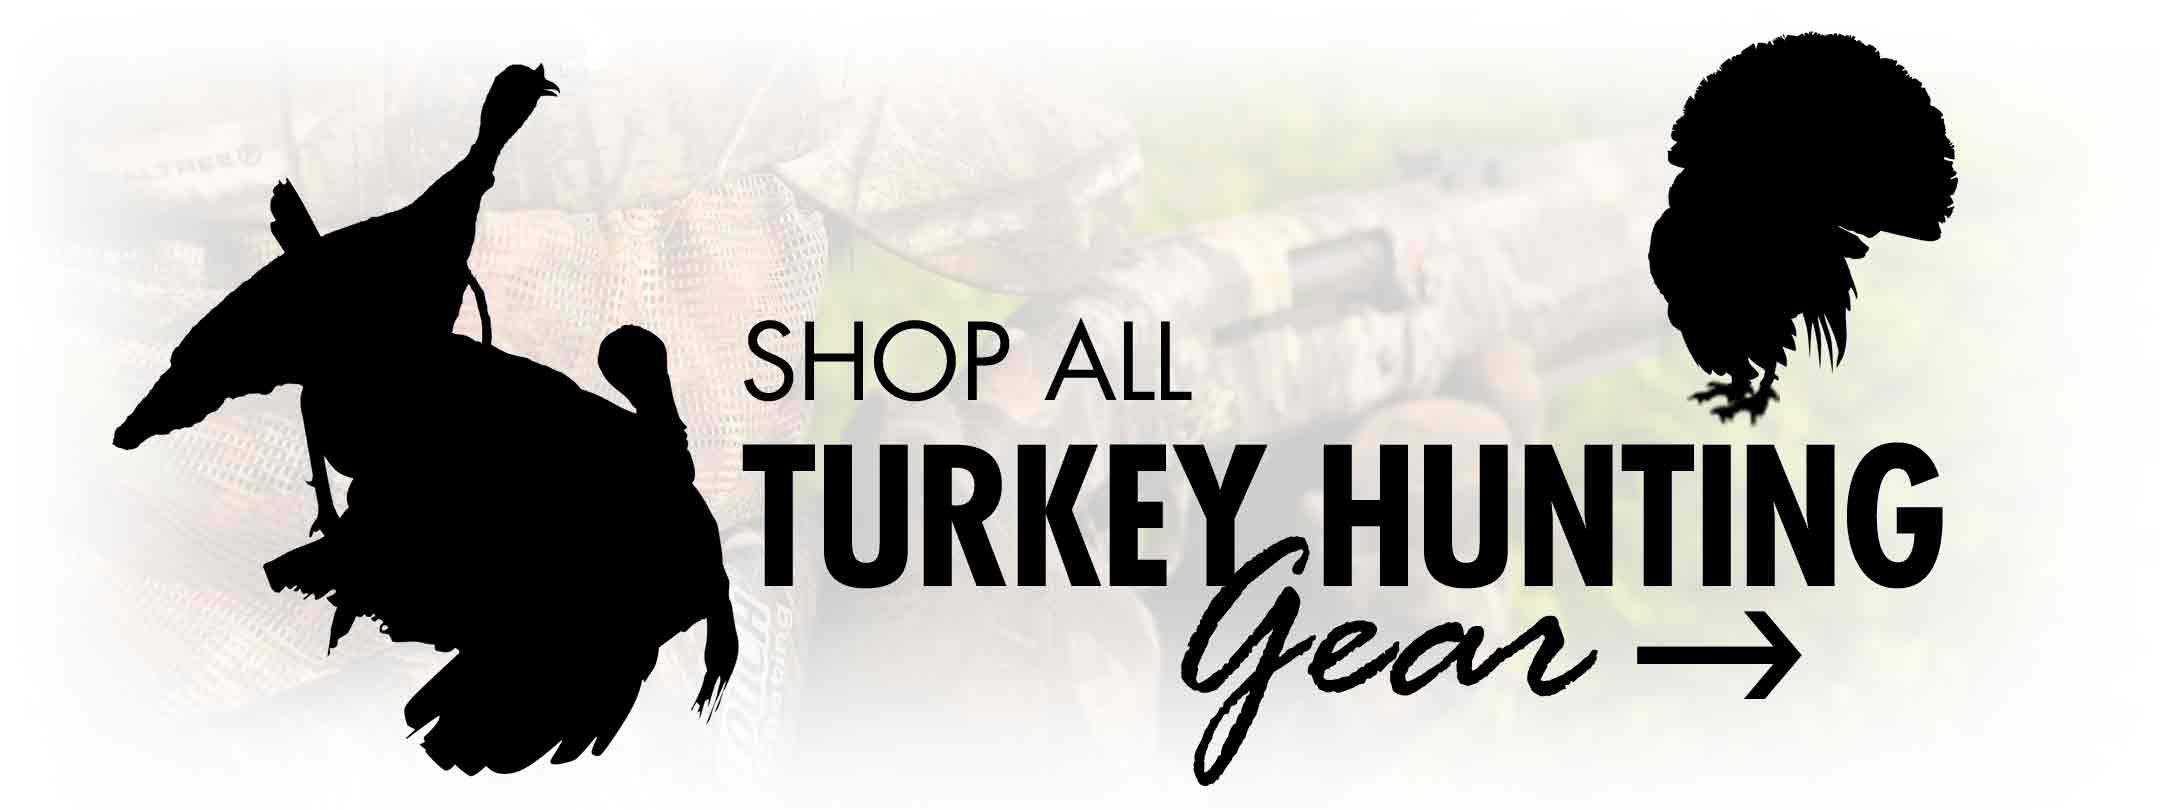 Save Big on Turkey Hunting Gear